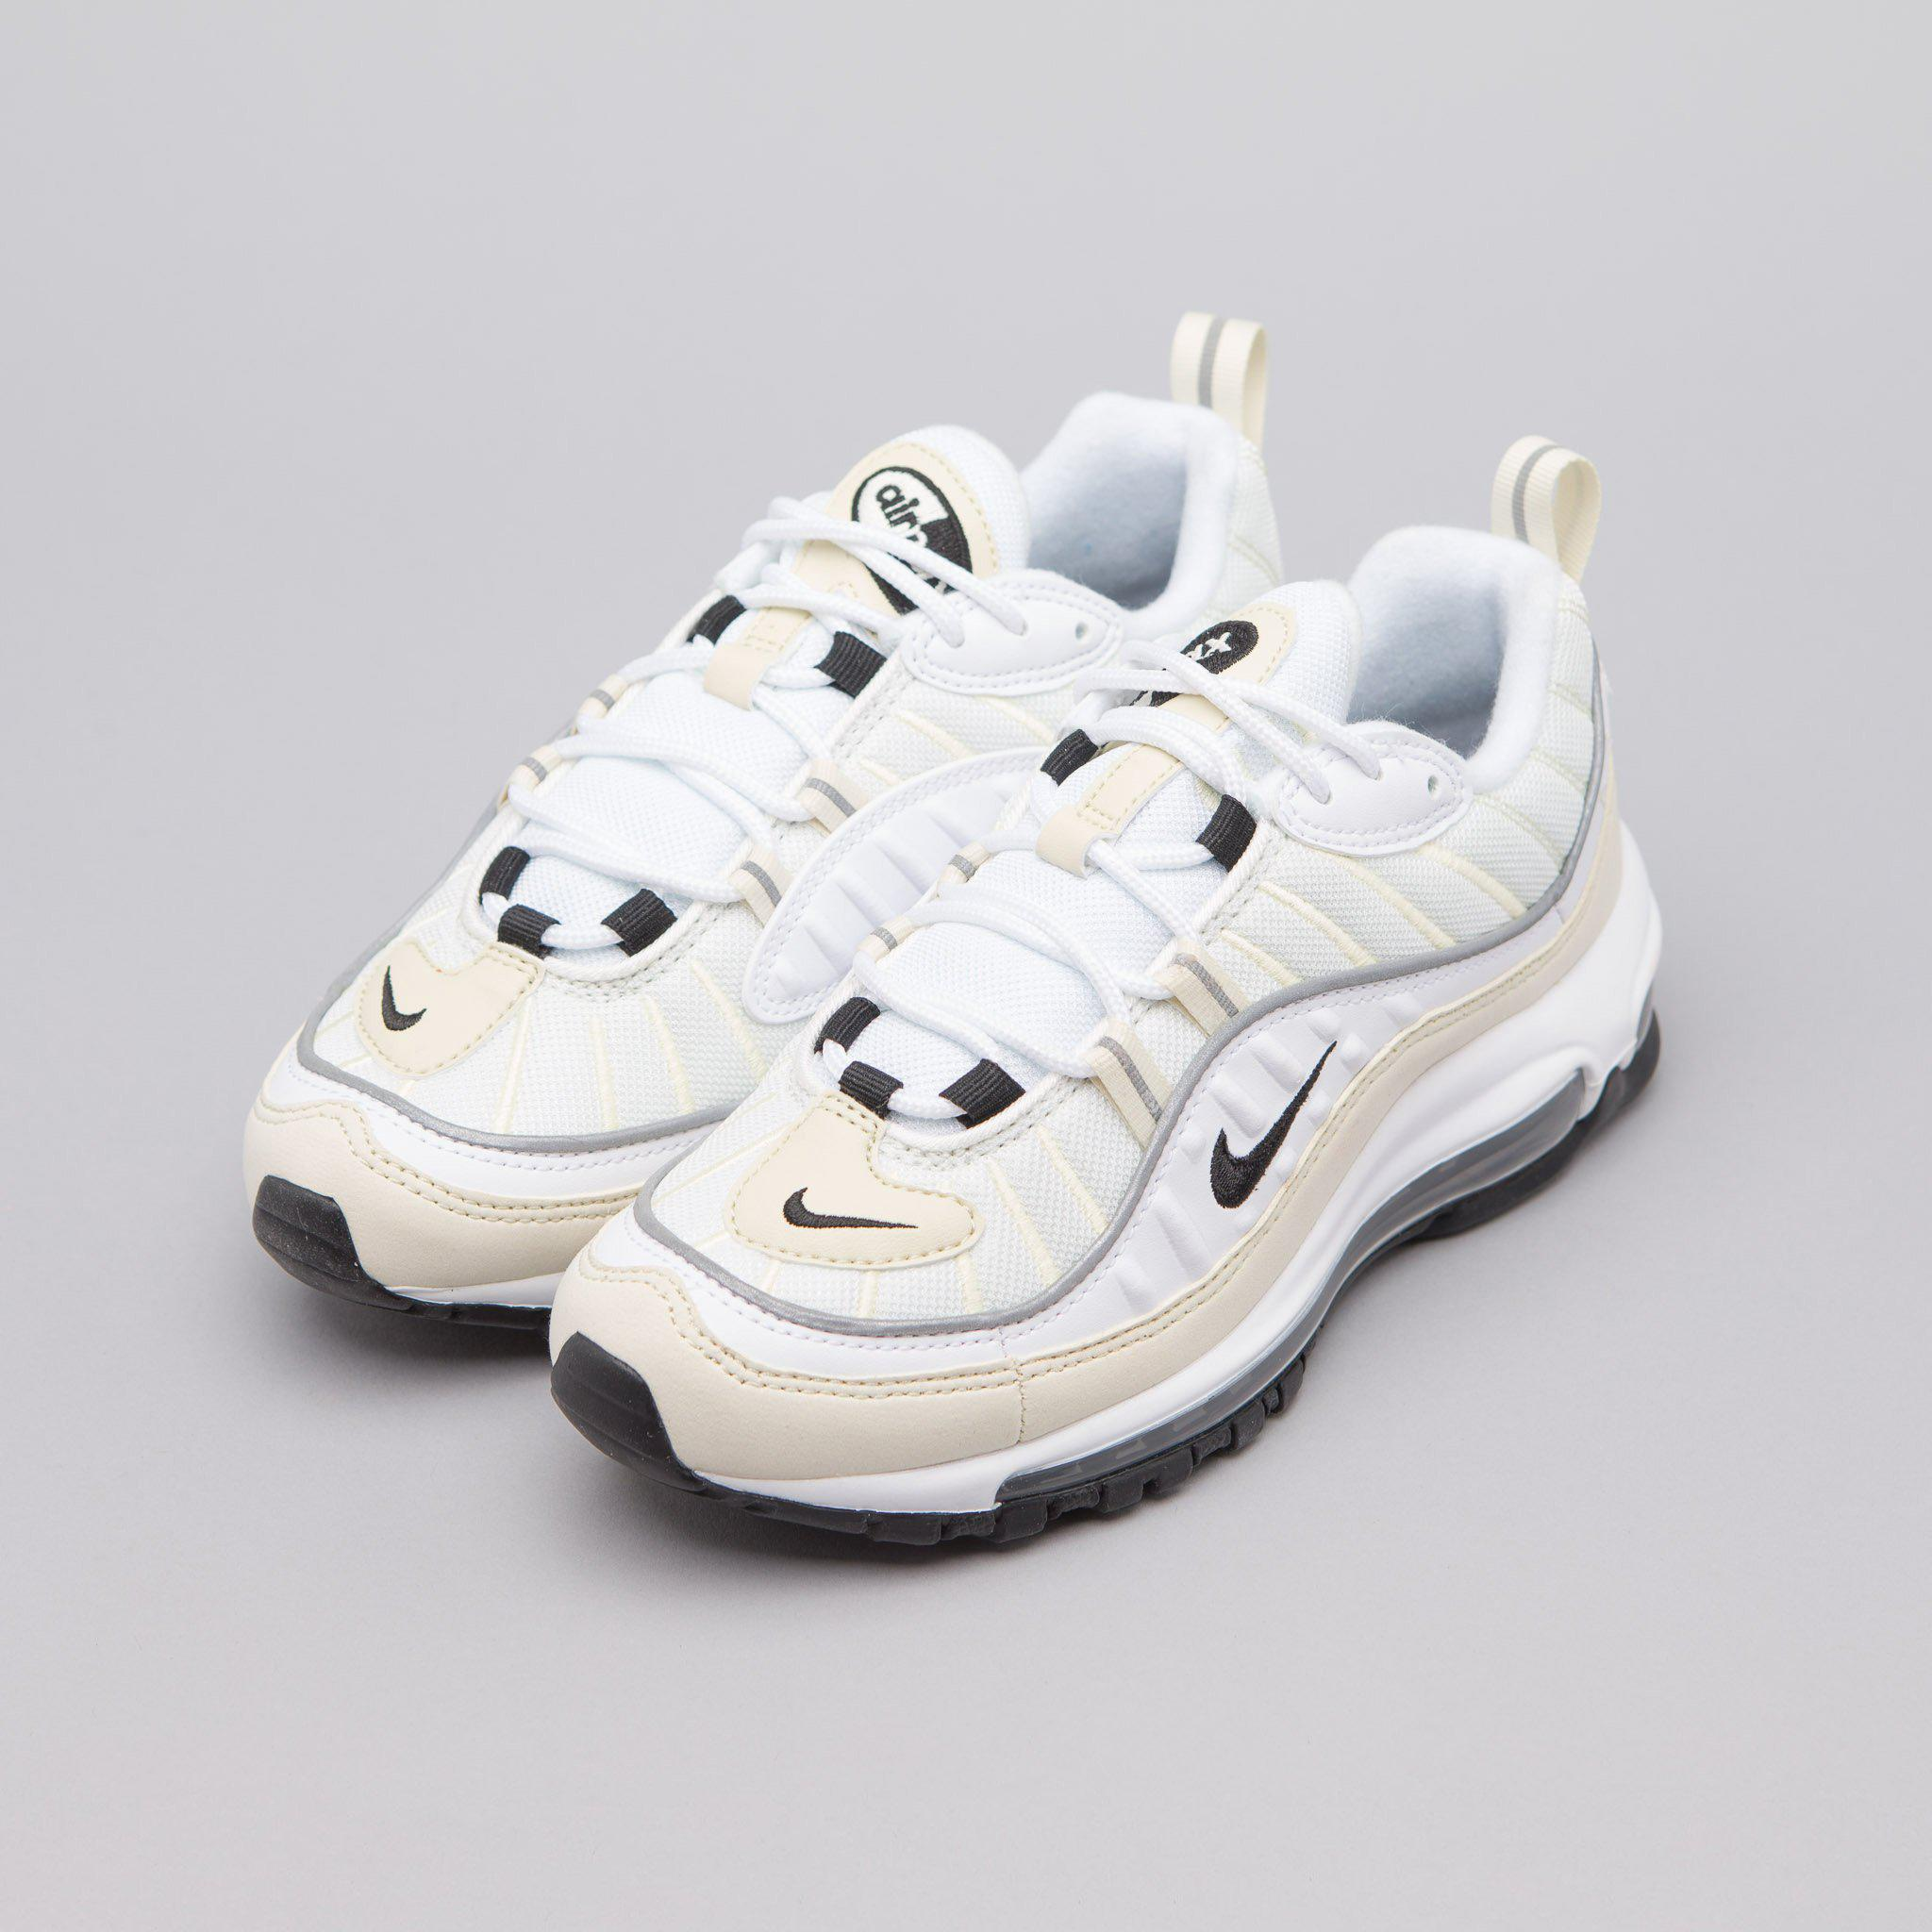 reputable site dbe0e 2d090 Women's Air Max 98 In White/black/fossil